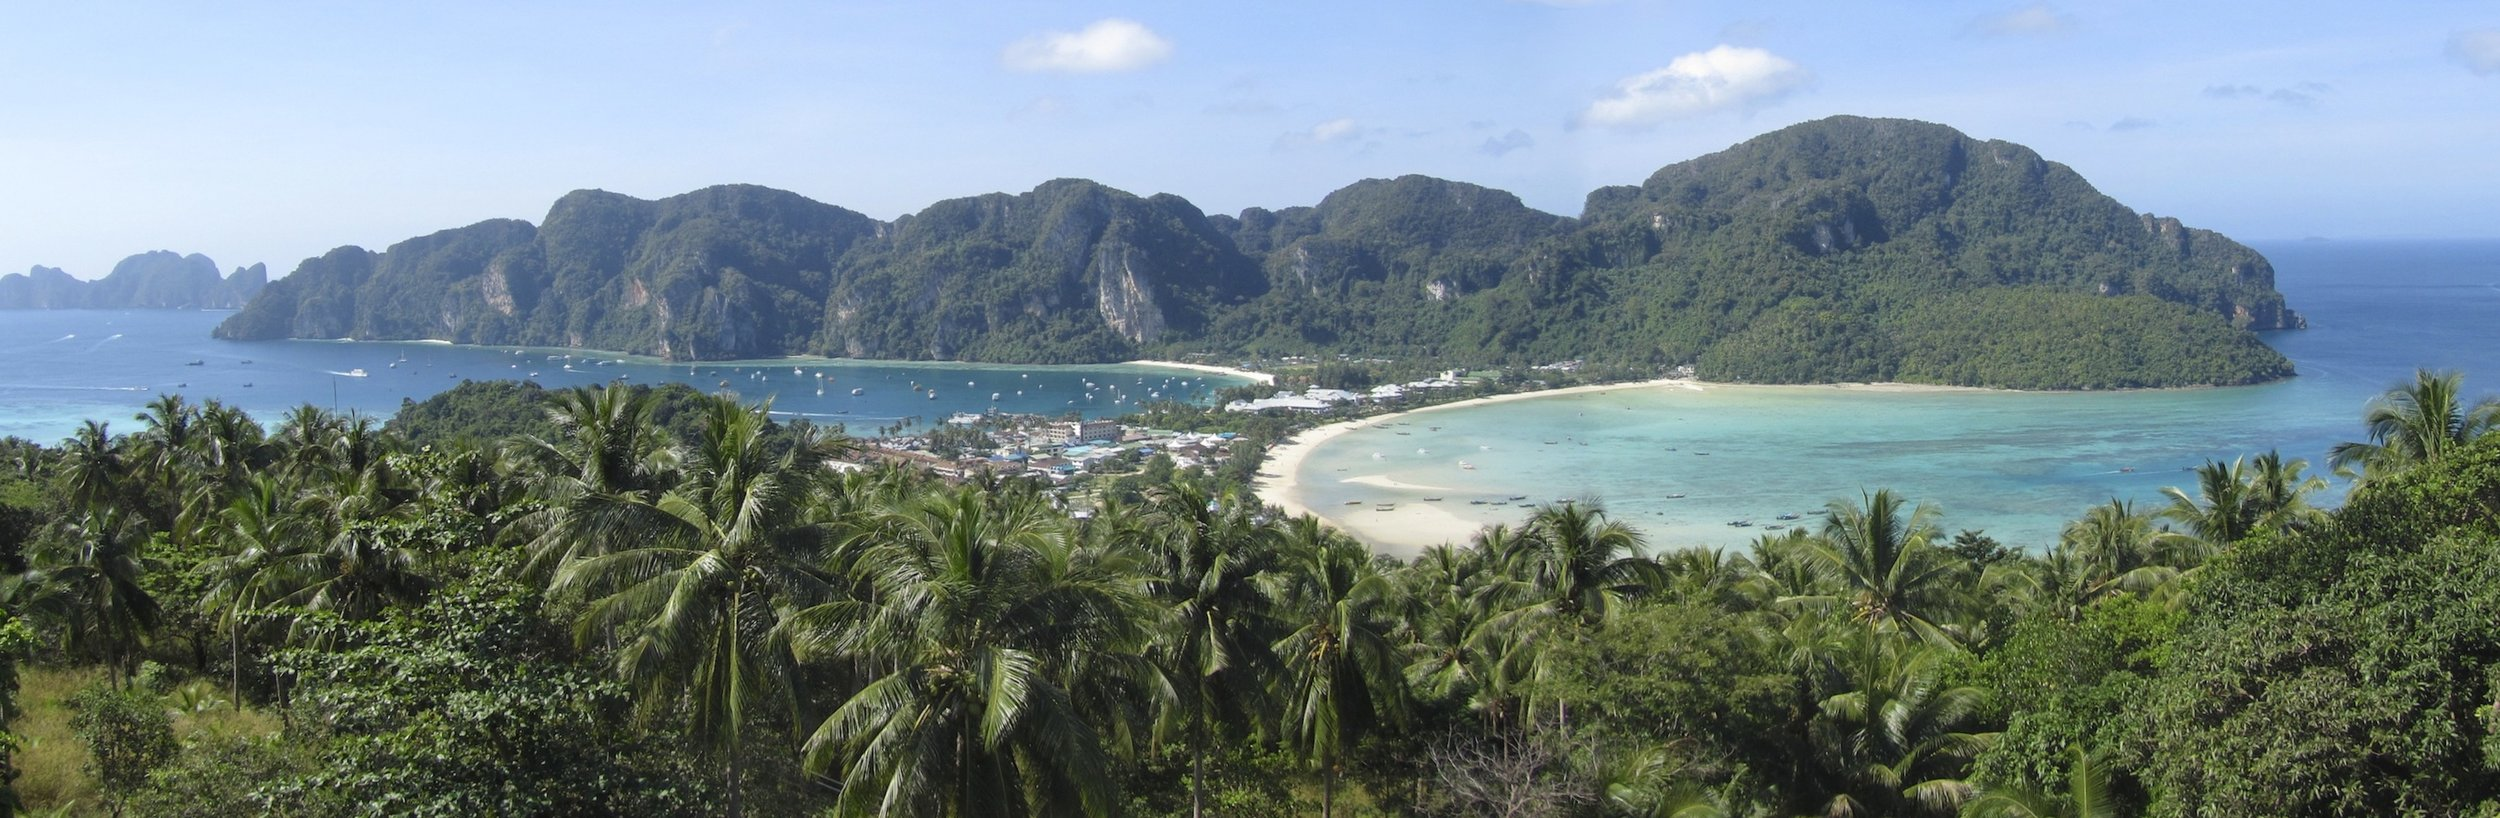 The Island of Ko Phi Phi